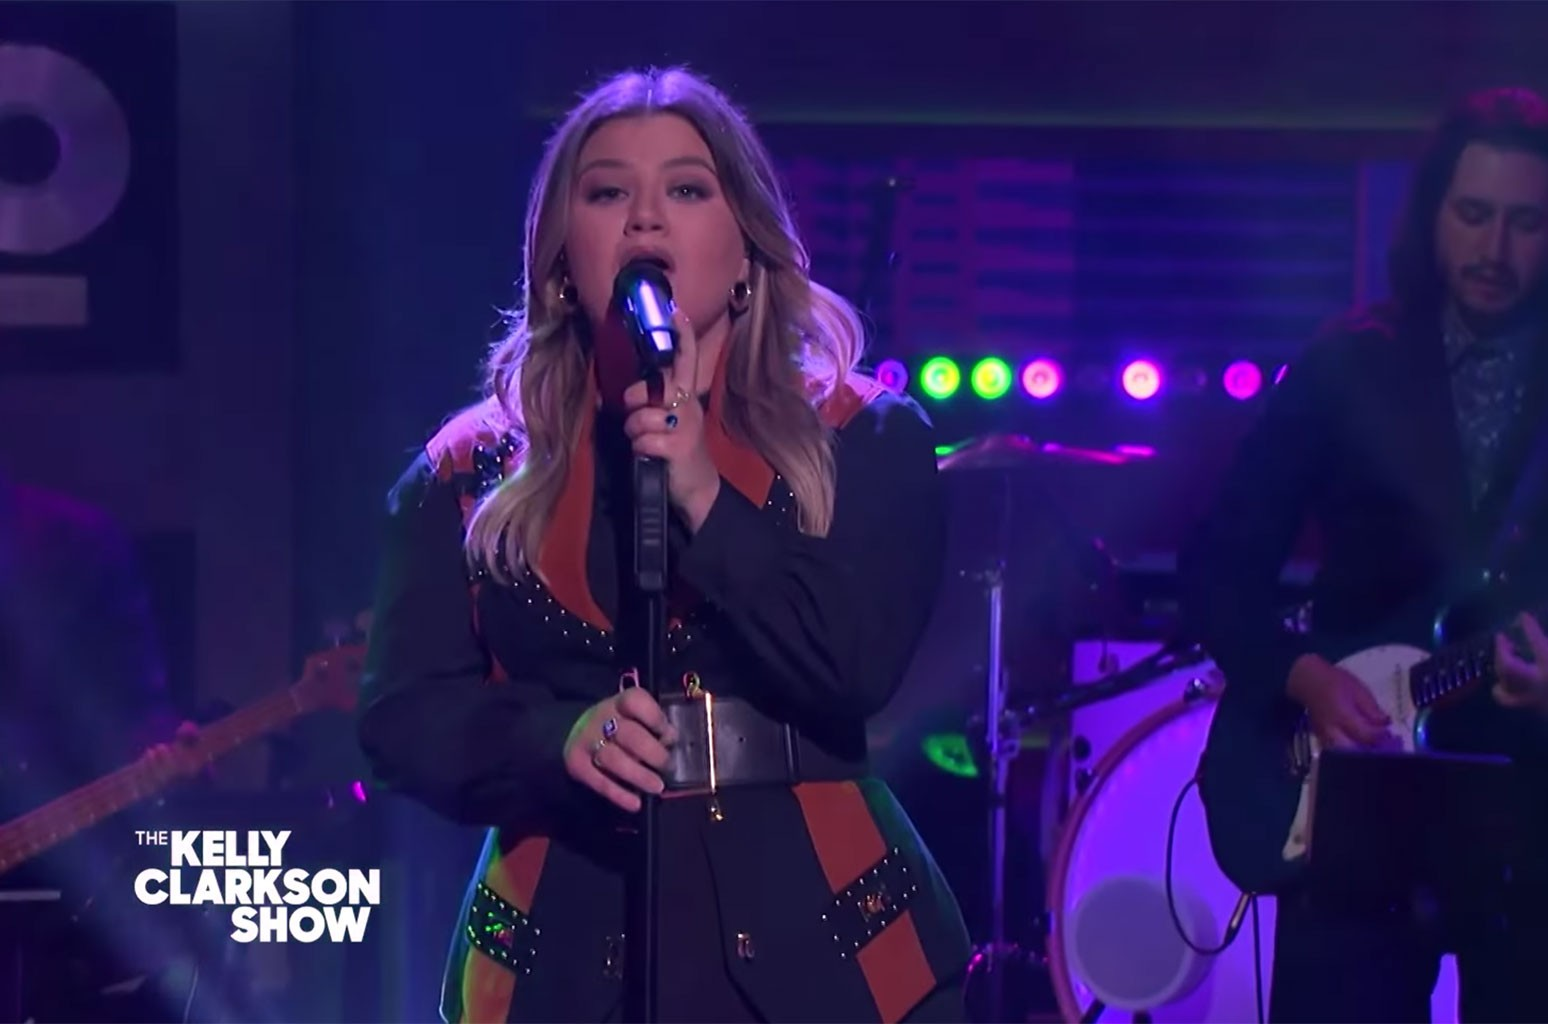 Kelly Clarkson Takes a Slow, Simmering 'Drive' With Her Cover of The Cars